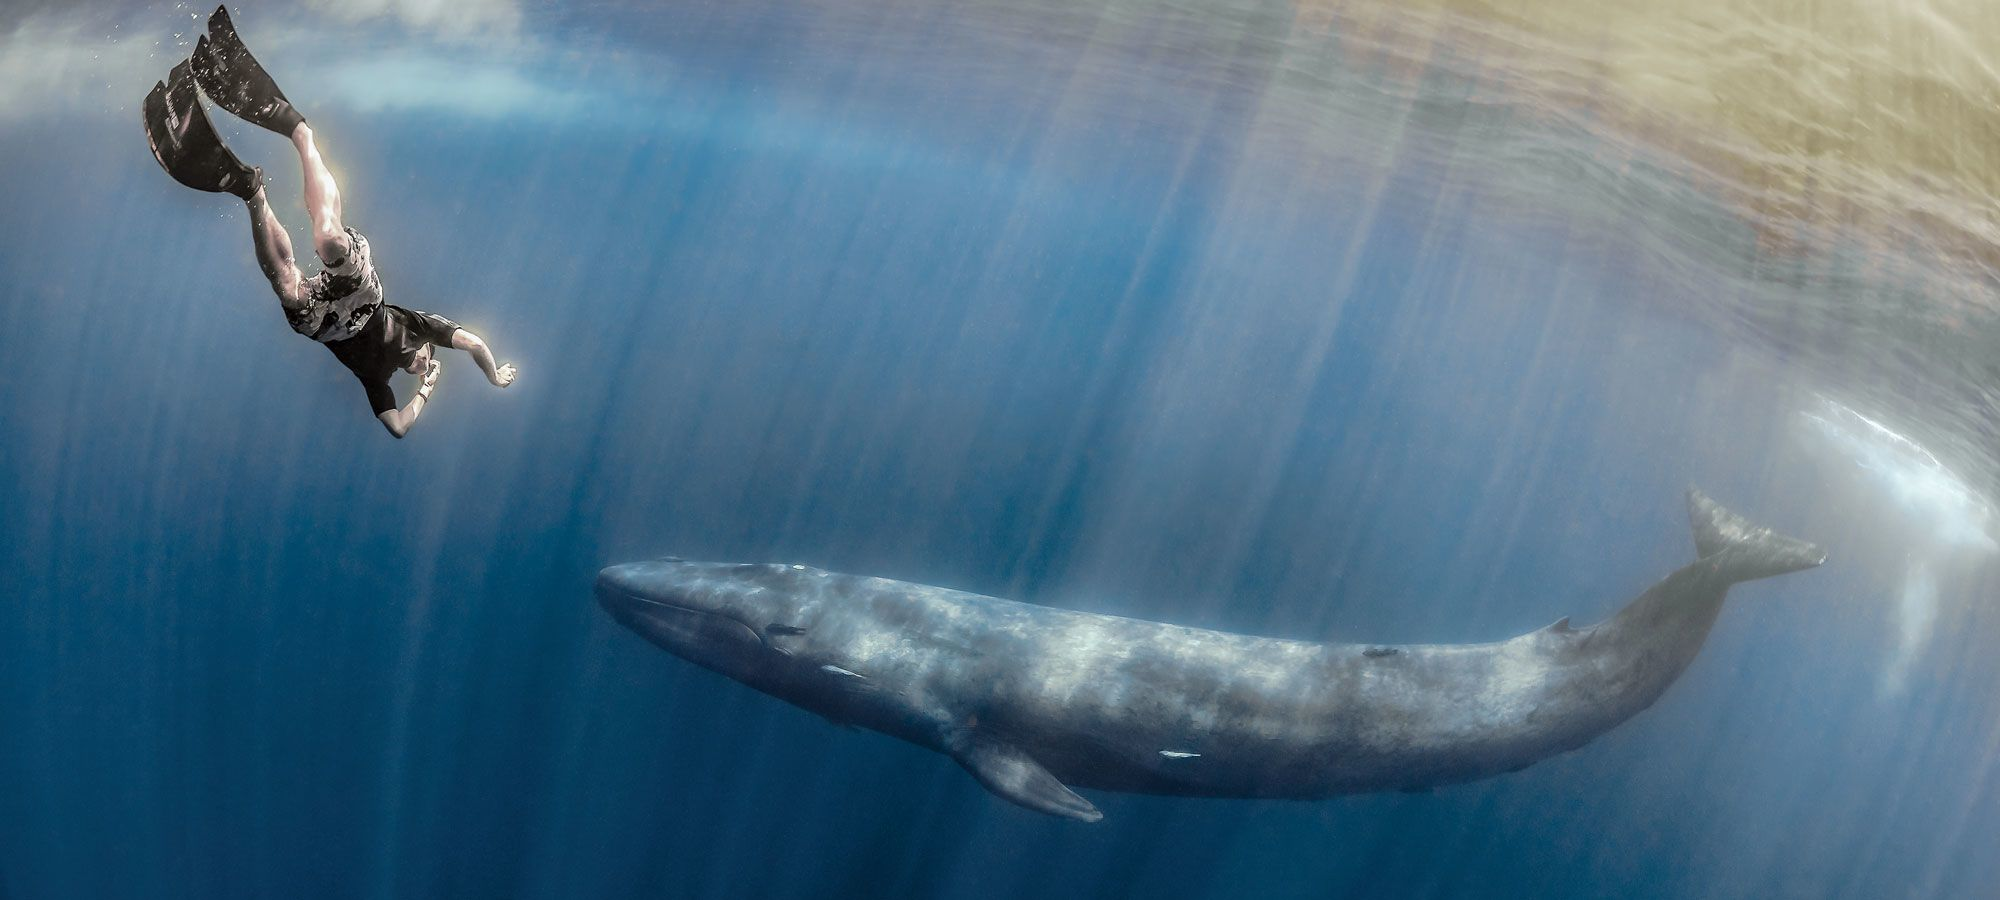 The Island of Giants: Swimming with Blue Whales in Sri Lanka